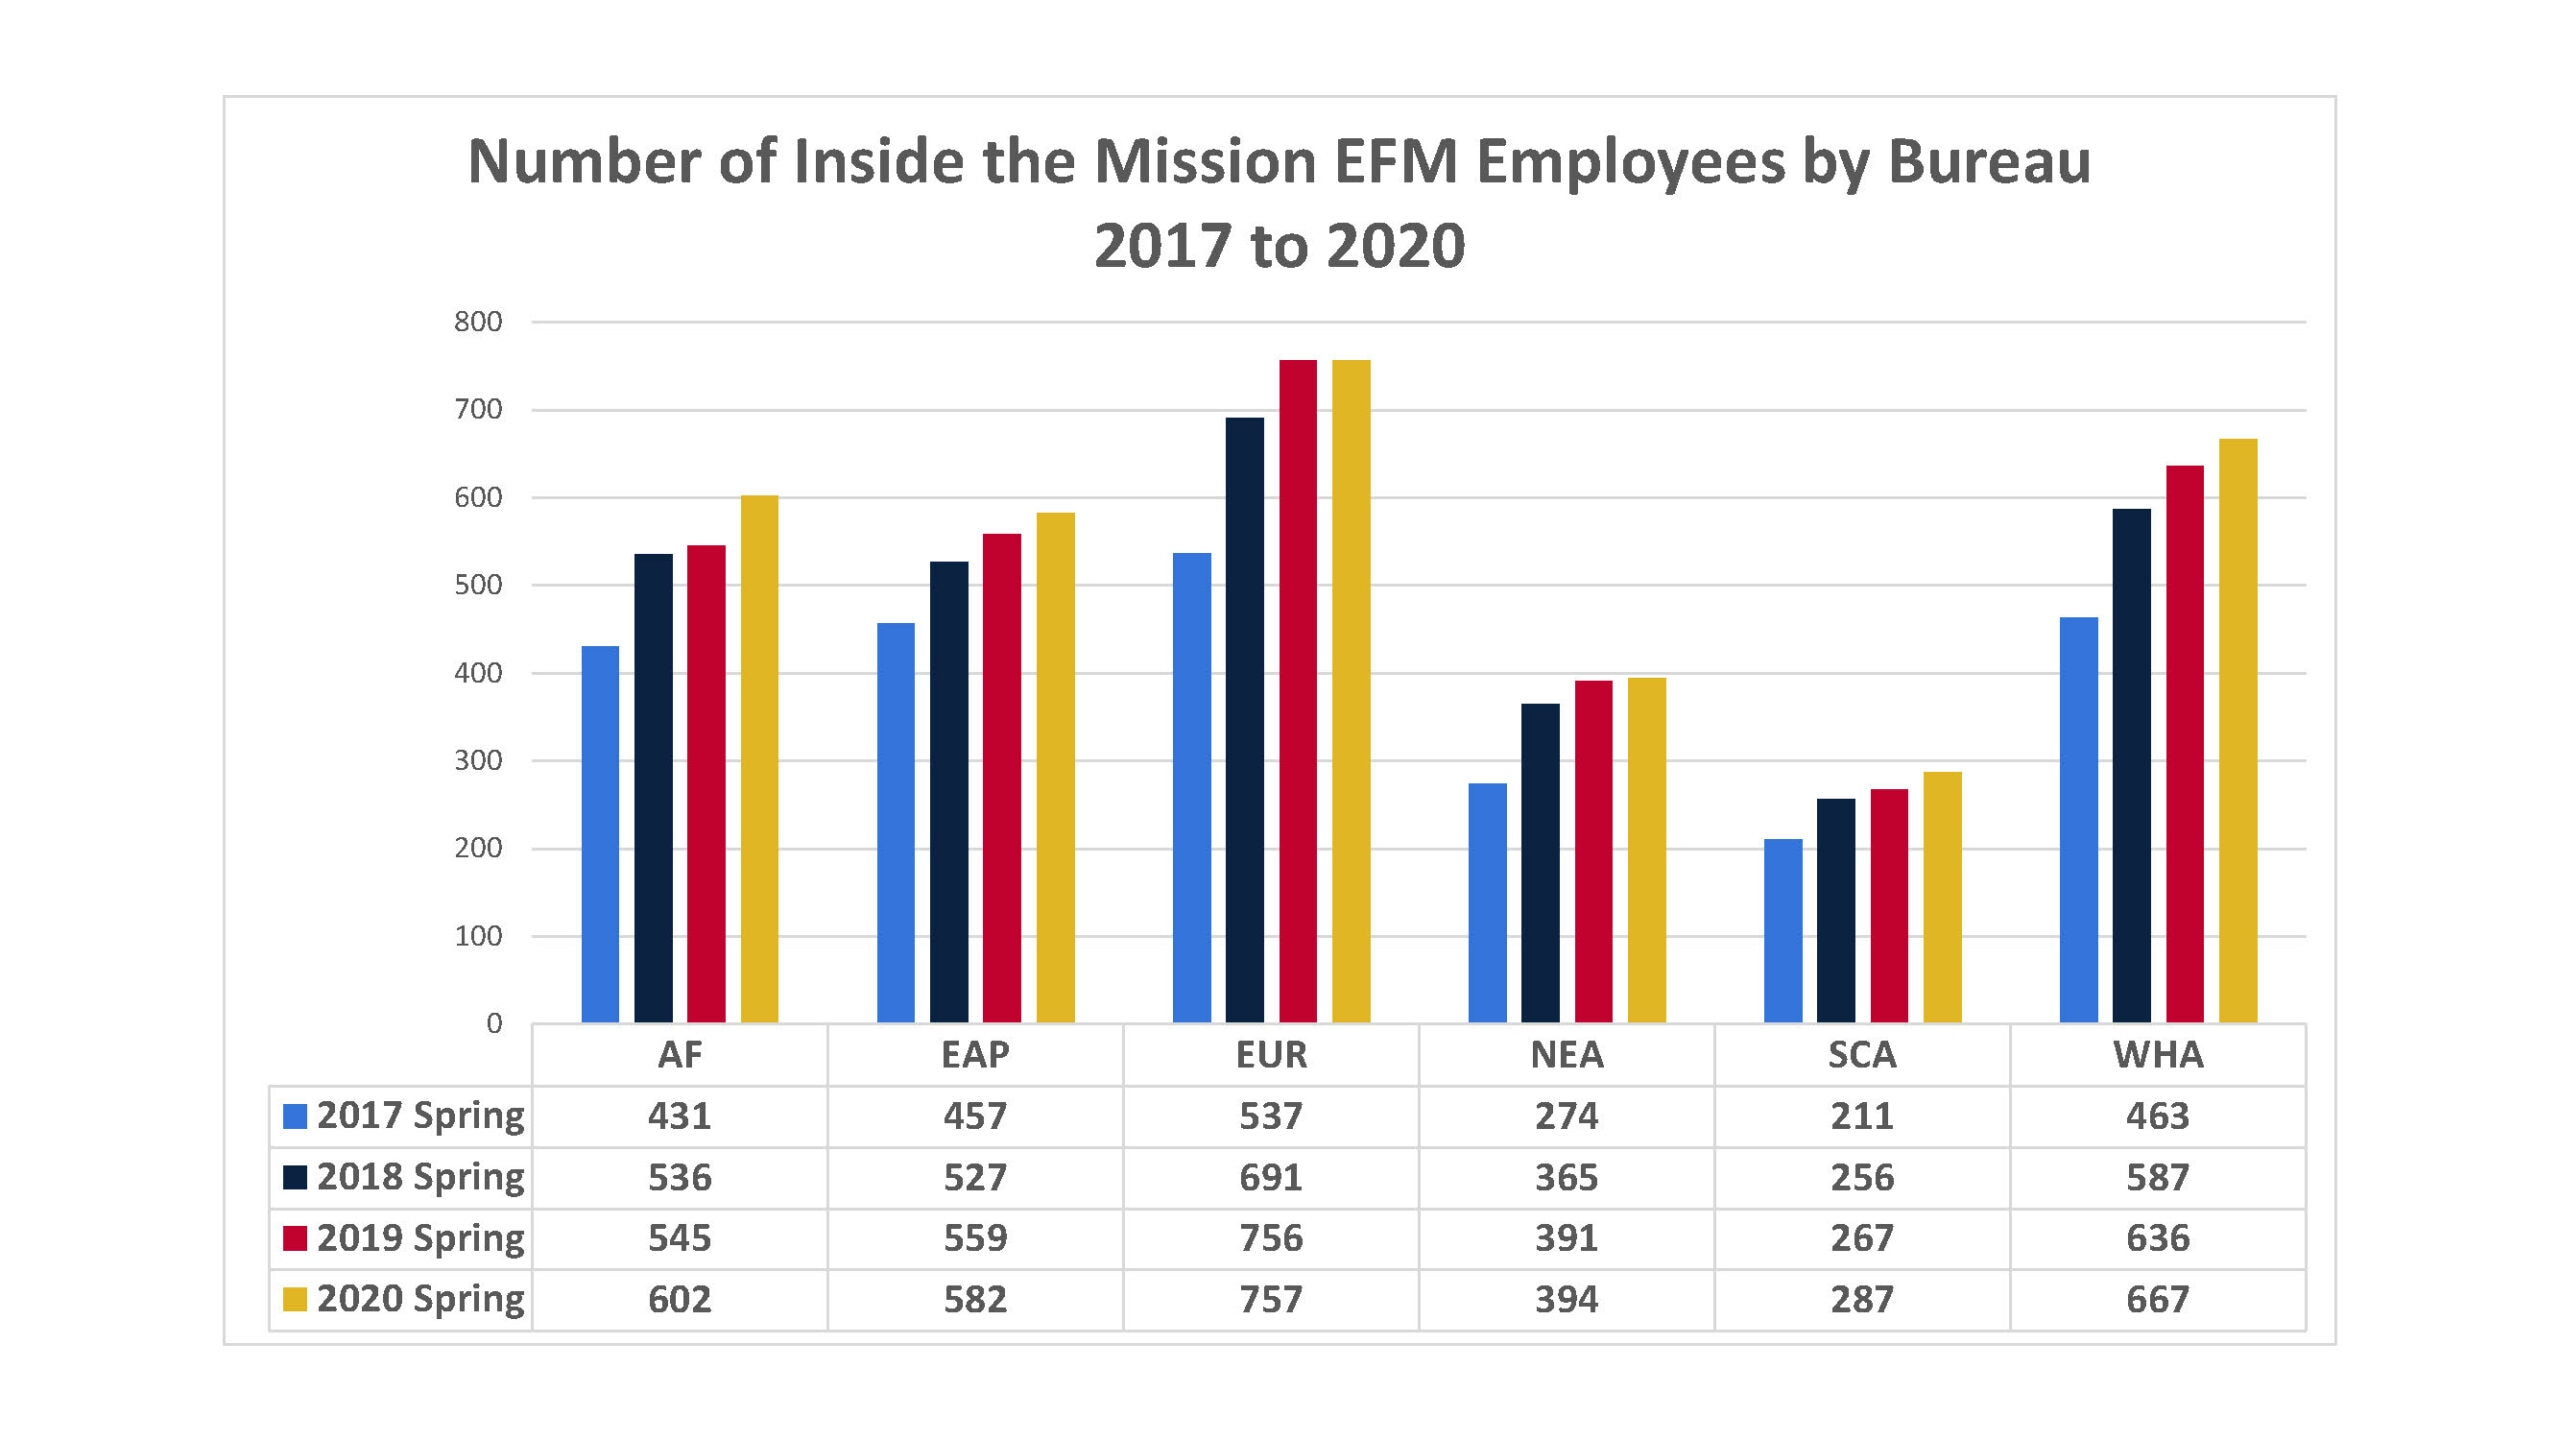 Number of Inside the Mission EFM Employees by Bureau 2017 to 2020